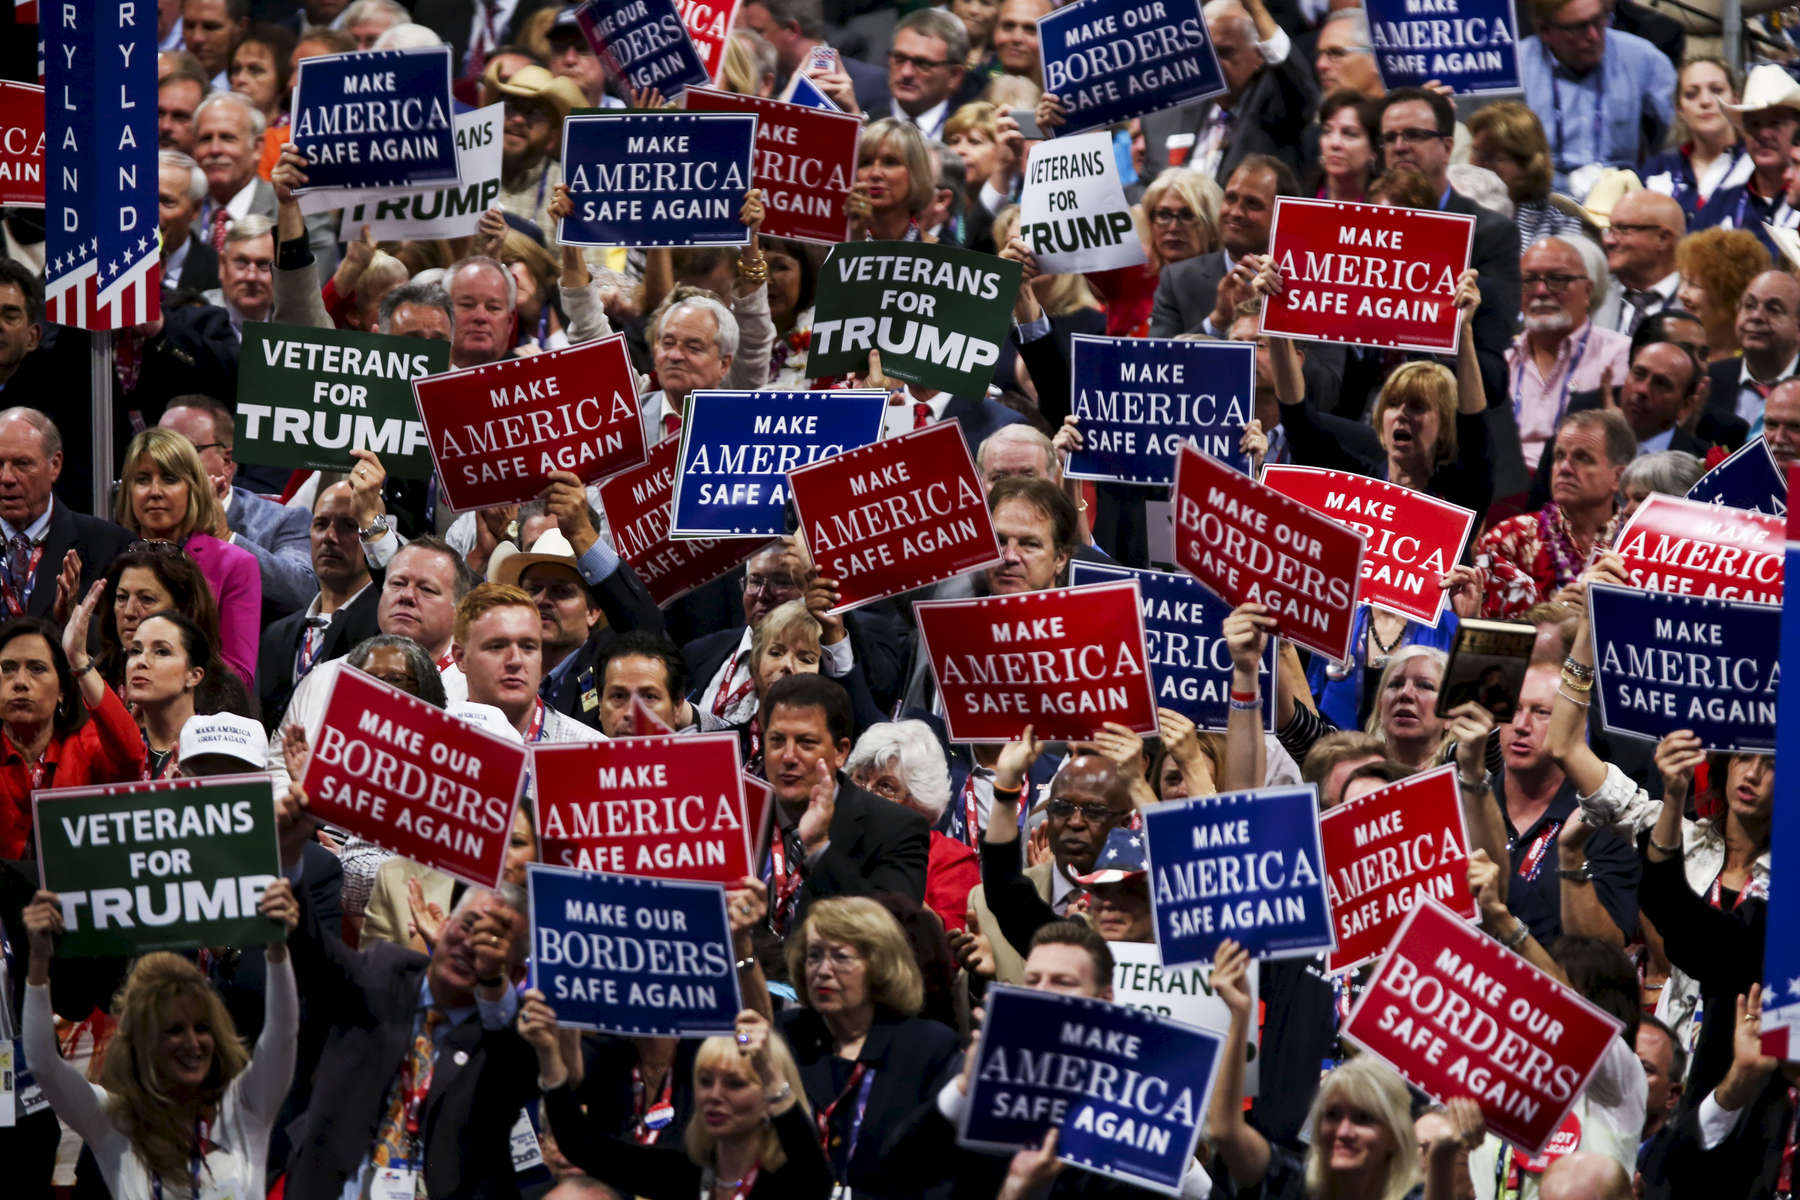 Republican delegates hold signs on the first day of the Republican convention in Cleveland, Ohio.